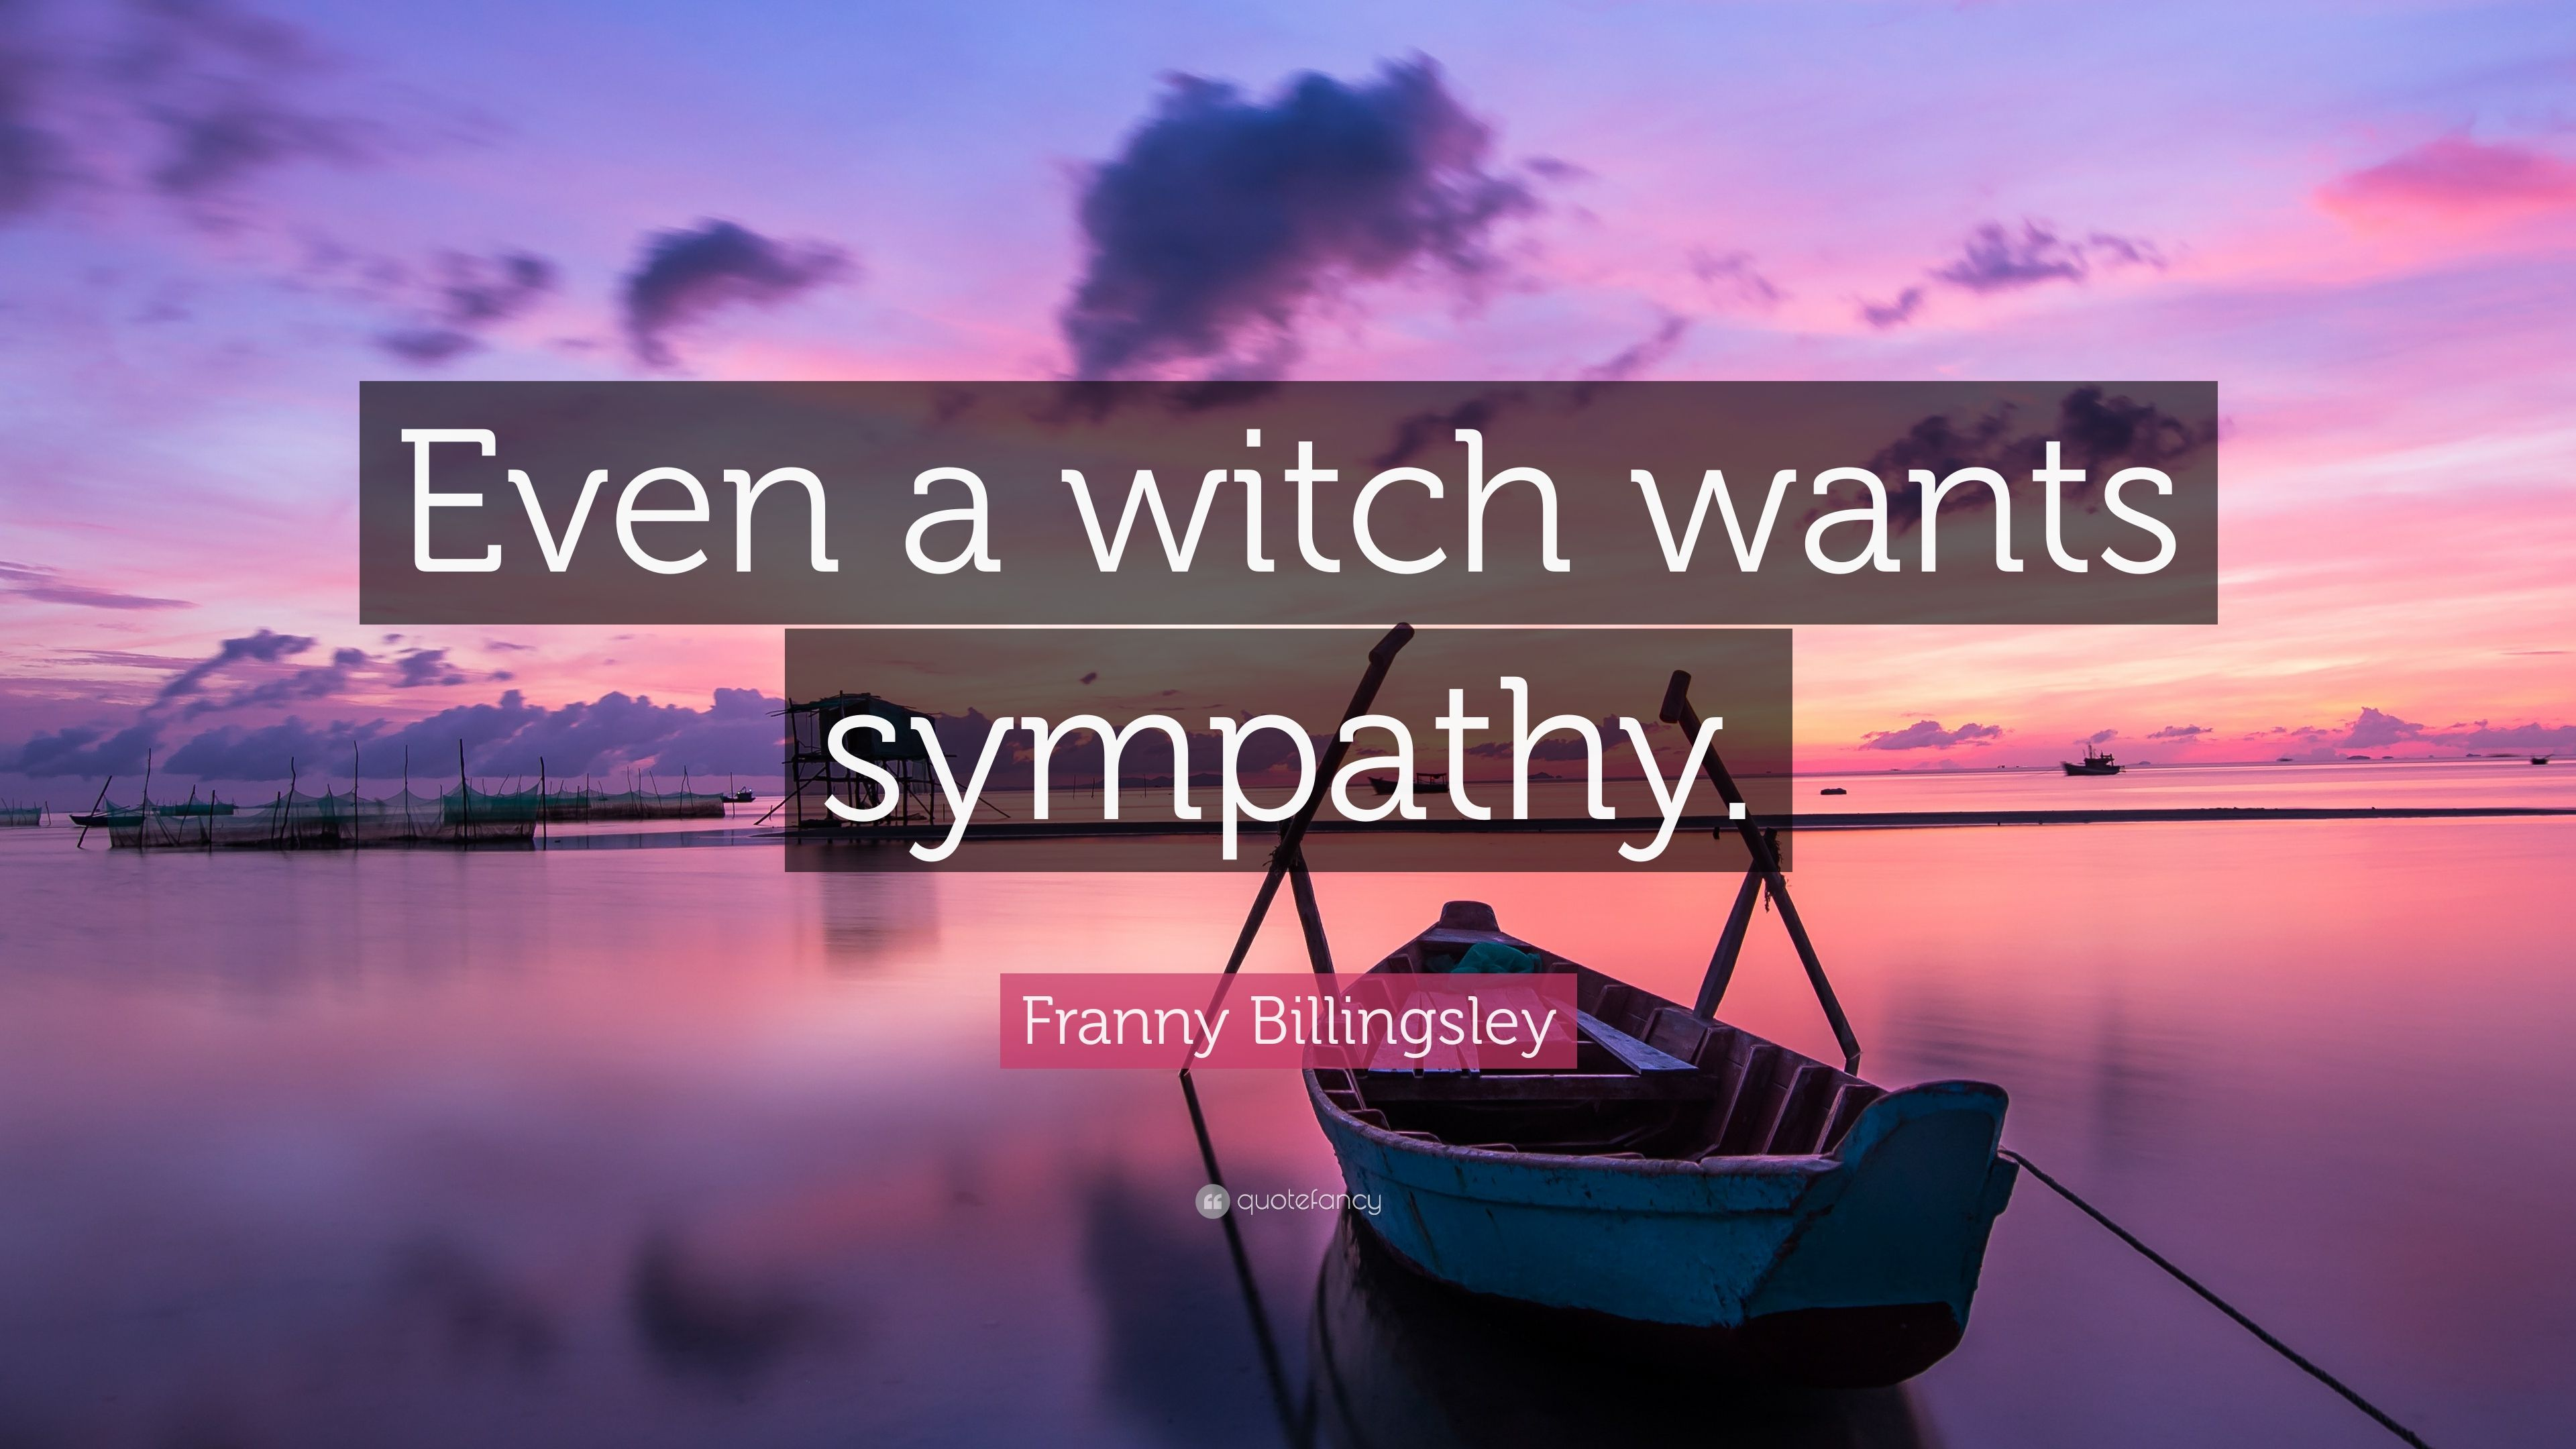 Franny billingsley quote even a witch wants sympathy 7 franny billingsley quote even a witch wants sympathy thecheapjerseys Gallery